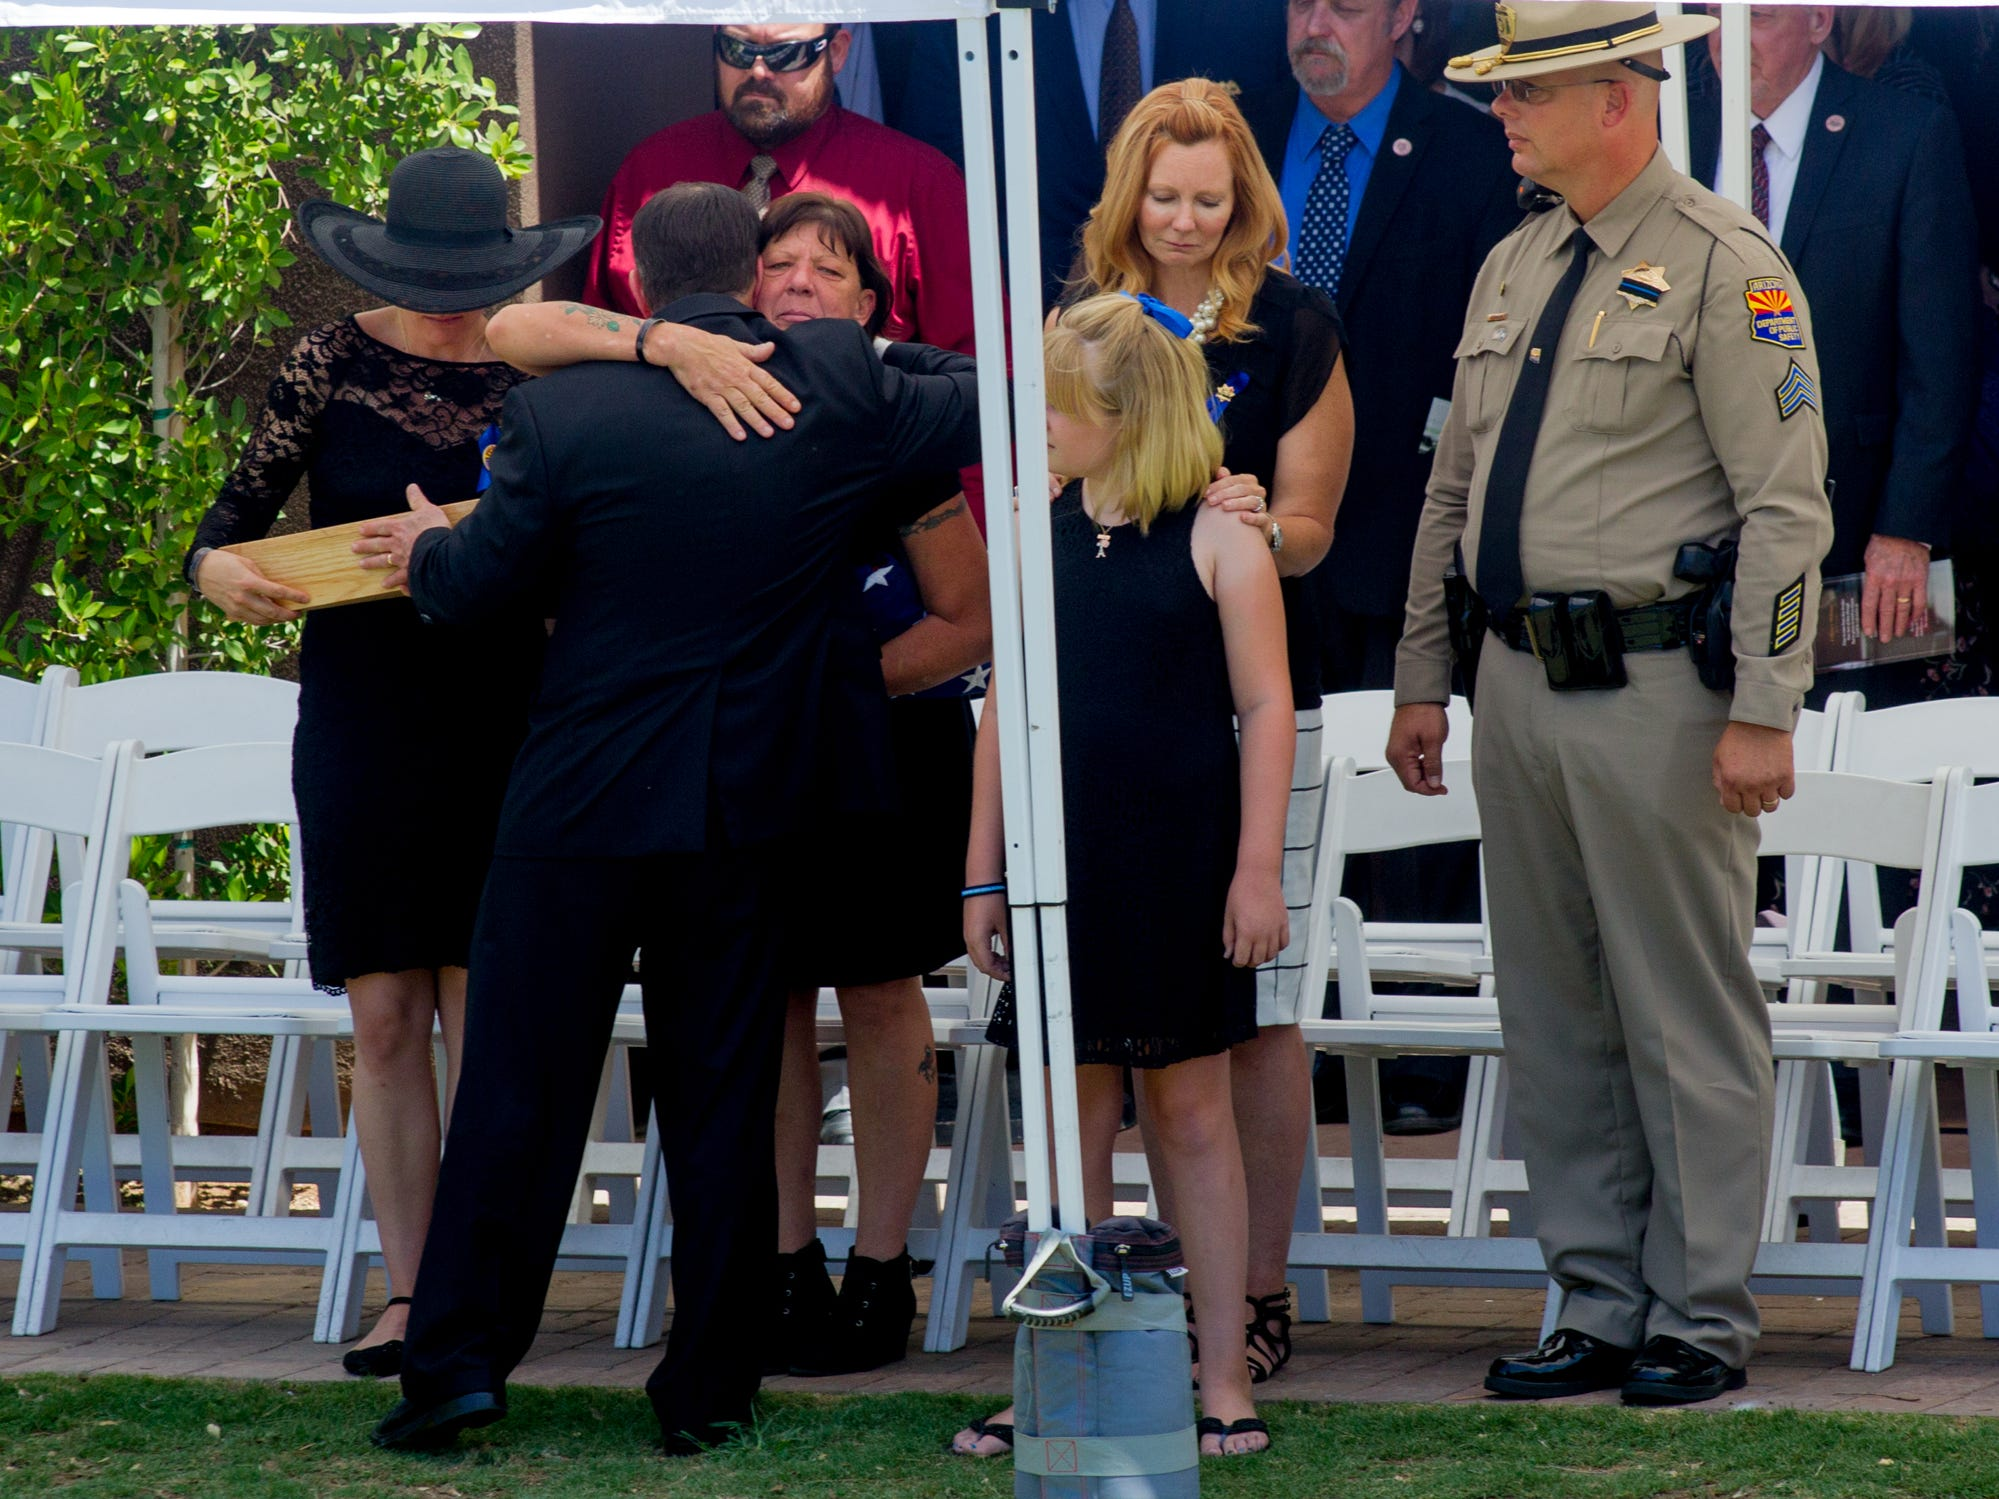 Gov. Doug Doucey hugs Debbie Edenhofer after giving her the flag of Arizona on Aug. 3, 2018 during the funeral for fallen DPS Trooper Tyler Edenhofer at Christ's Church of the Valley in Peoria.